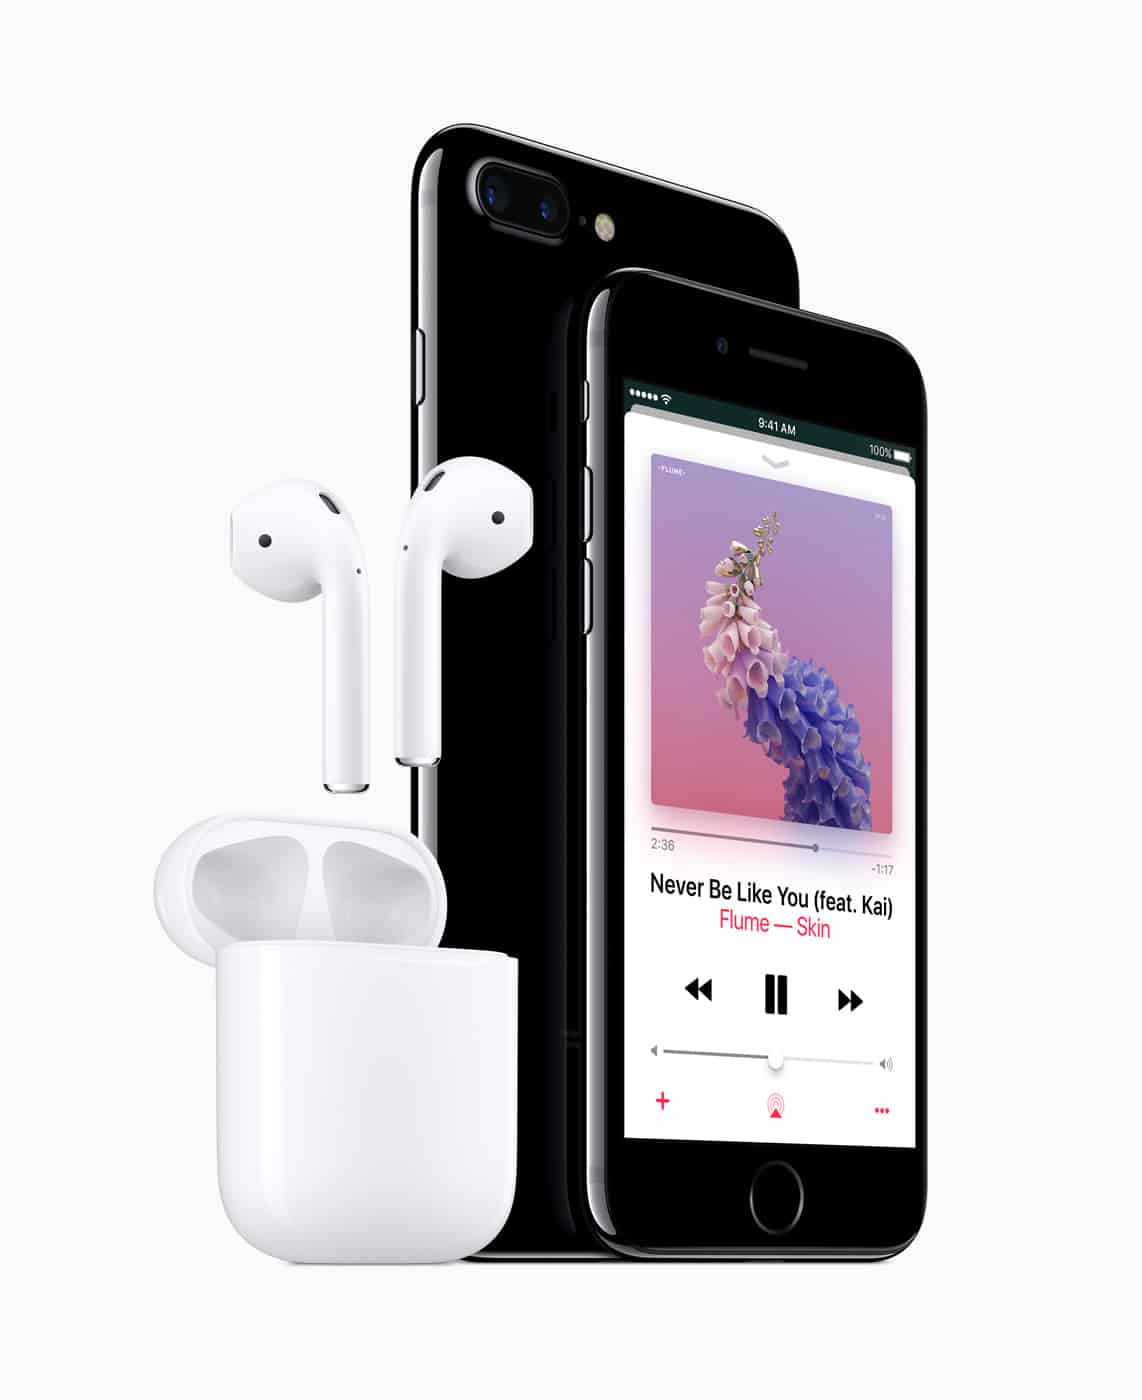 Apple AirPods iPhone 7